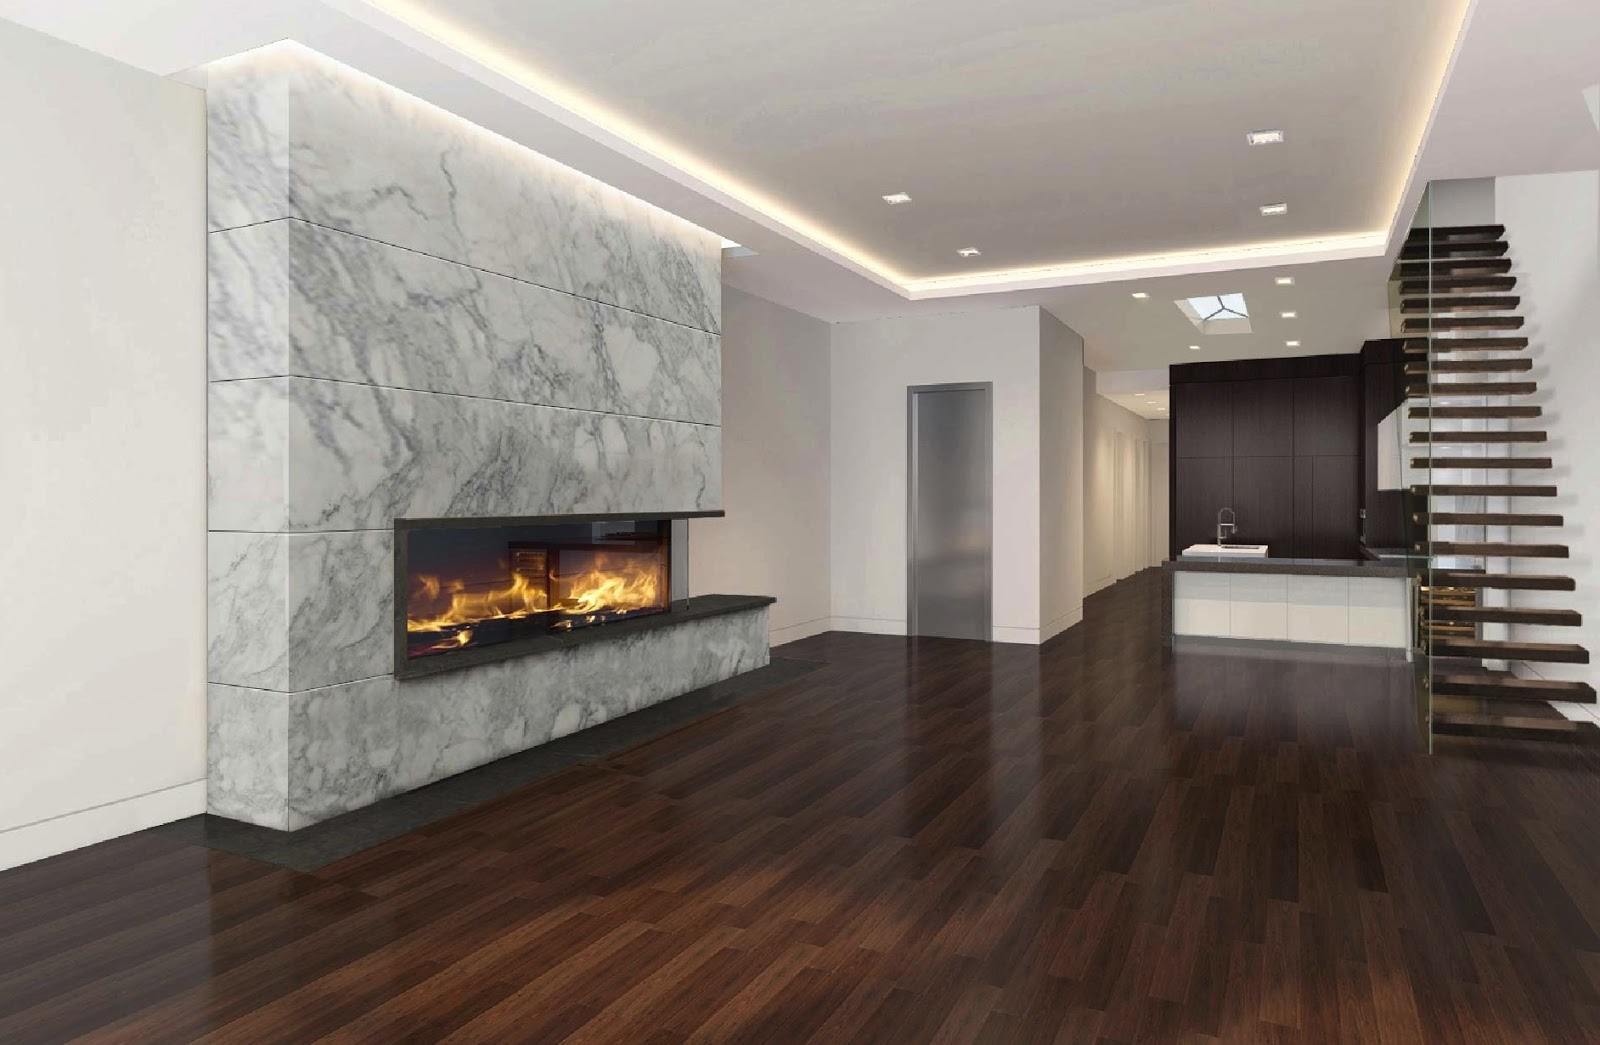 Acucraft Fireplaces New Custom Gas Fireplace Brochure Now Available